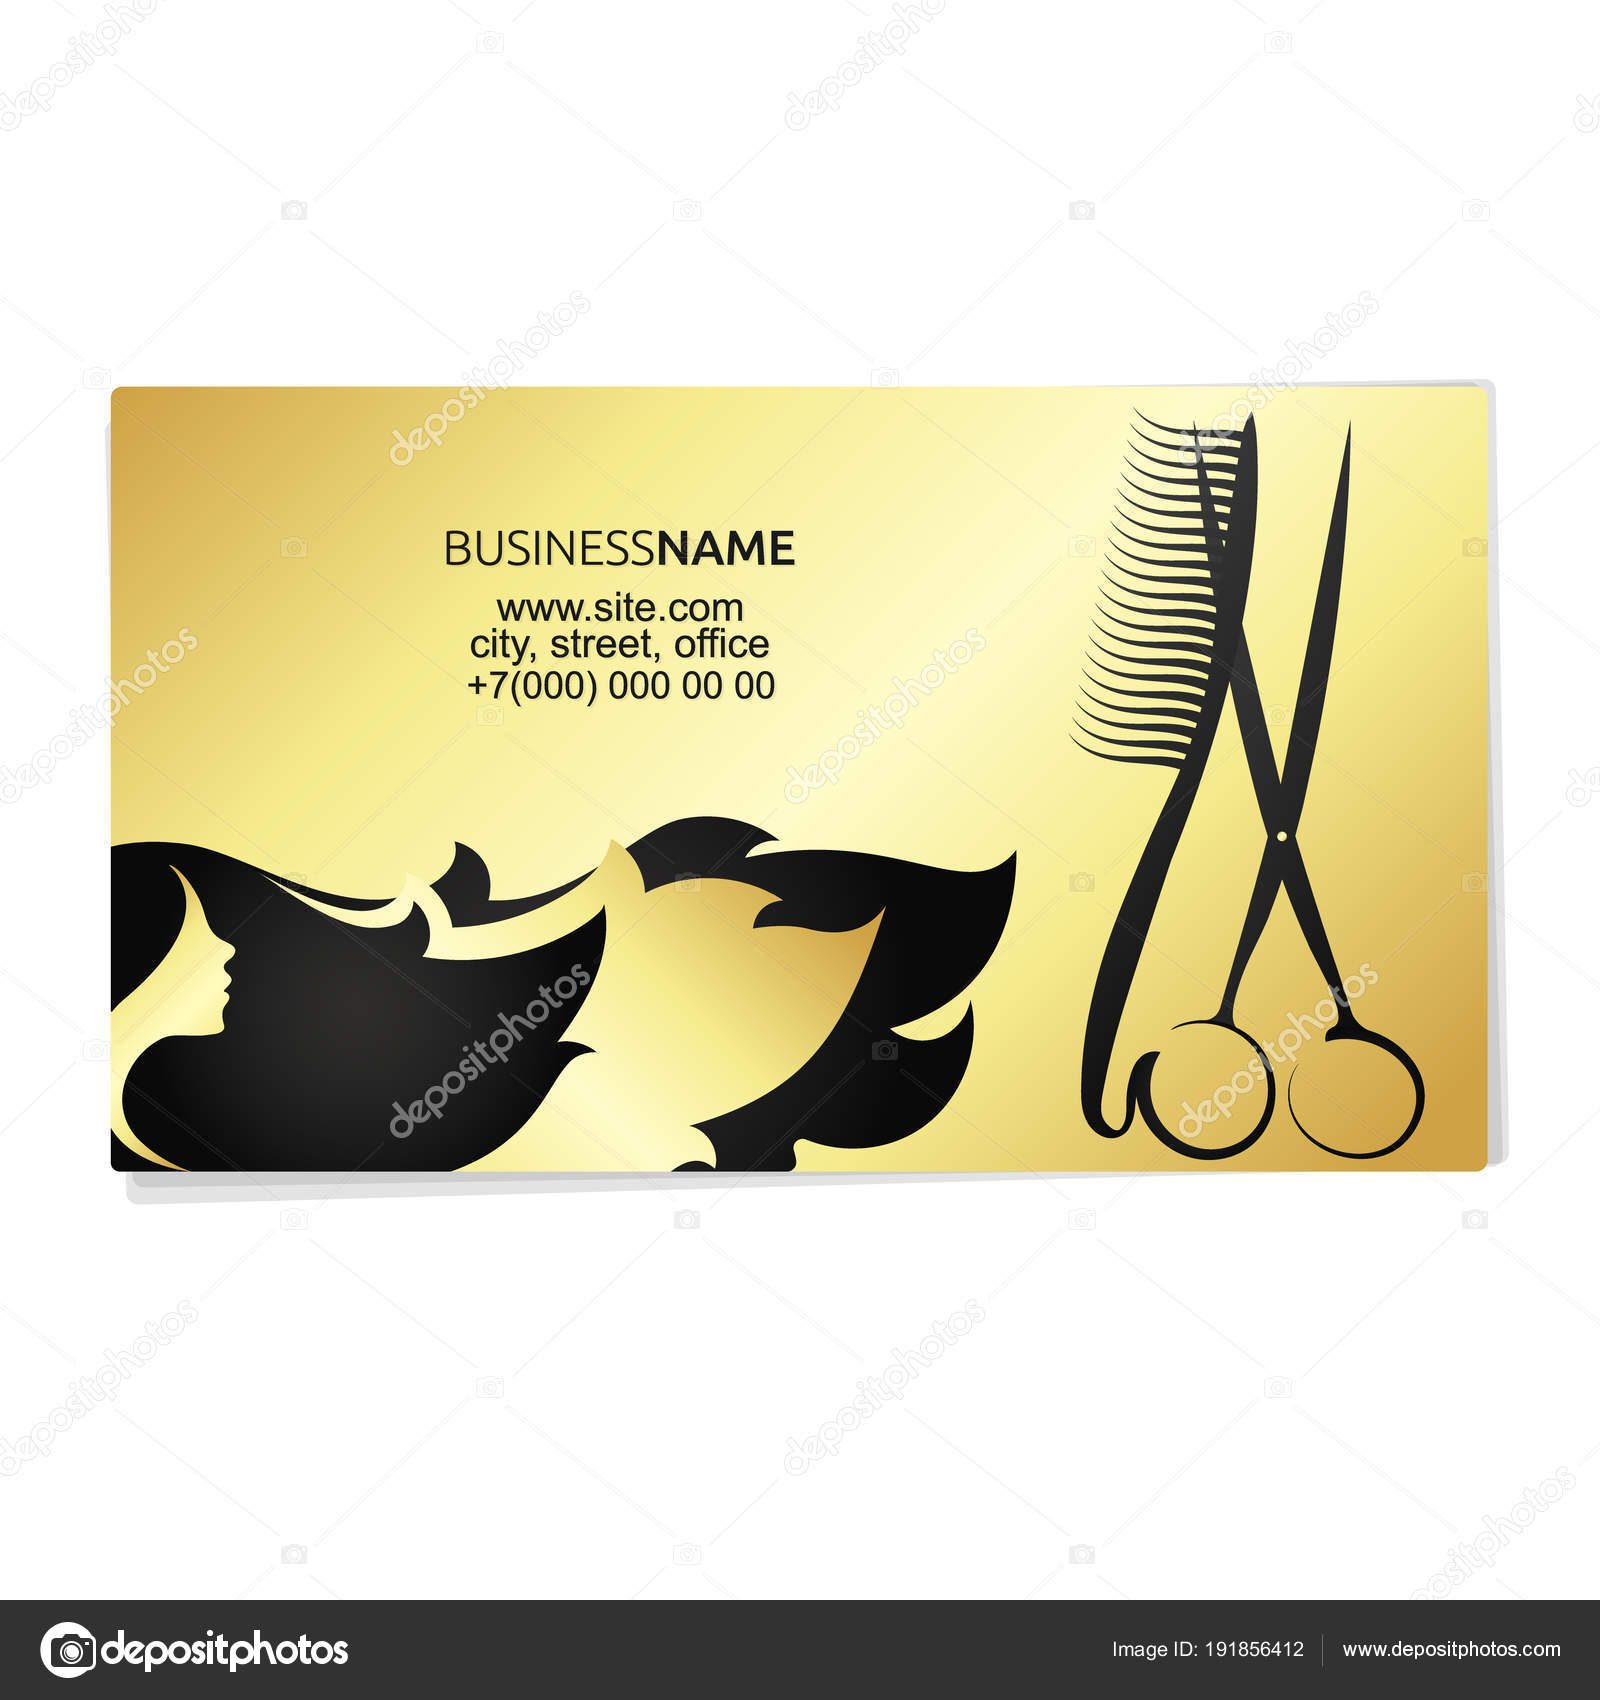 Beauty salon business card gold stock vector john1279 191856412 beauty salon and hairdresser business card gold concept vector by john1279 reheart Choice Image